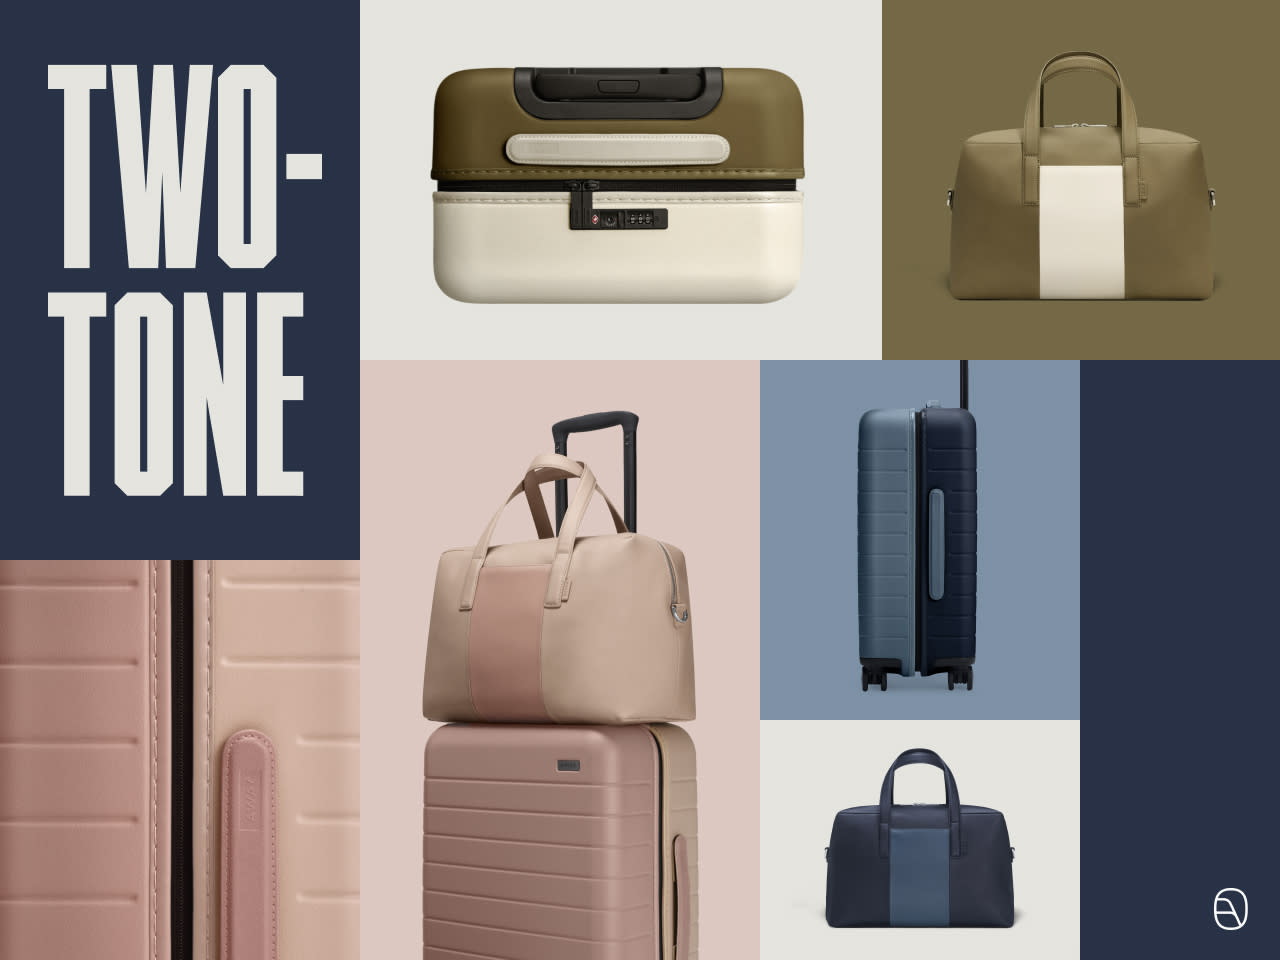 Two tone Away luggage in pink, blue and olive; hardsided carry-on suitcase and overnight travel bag